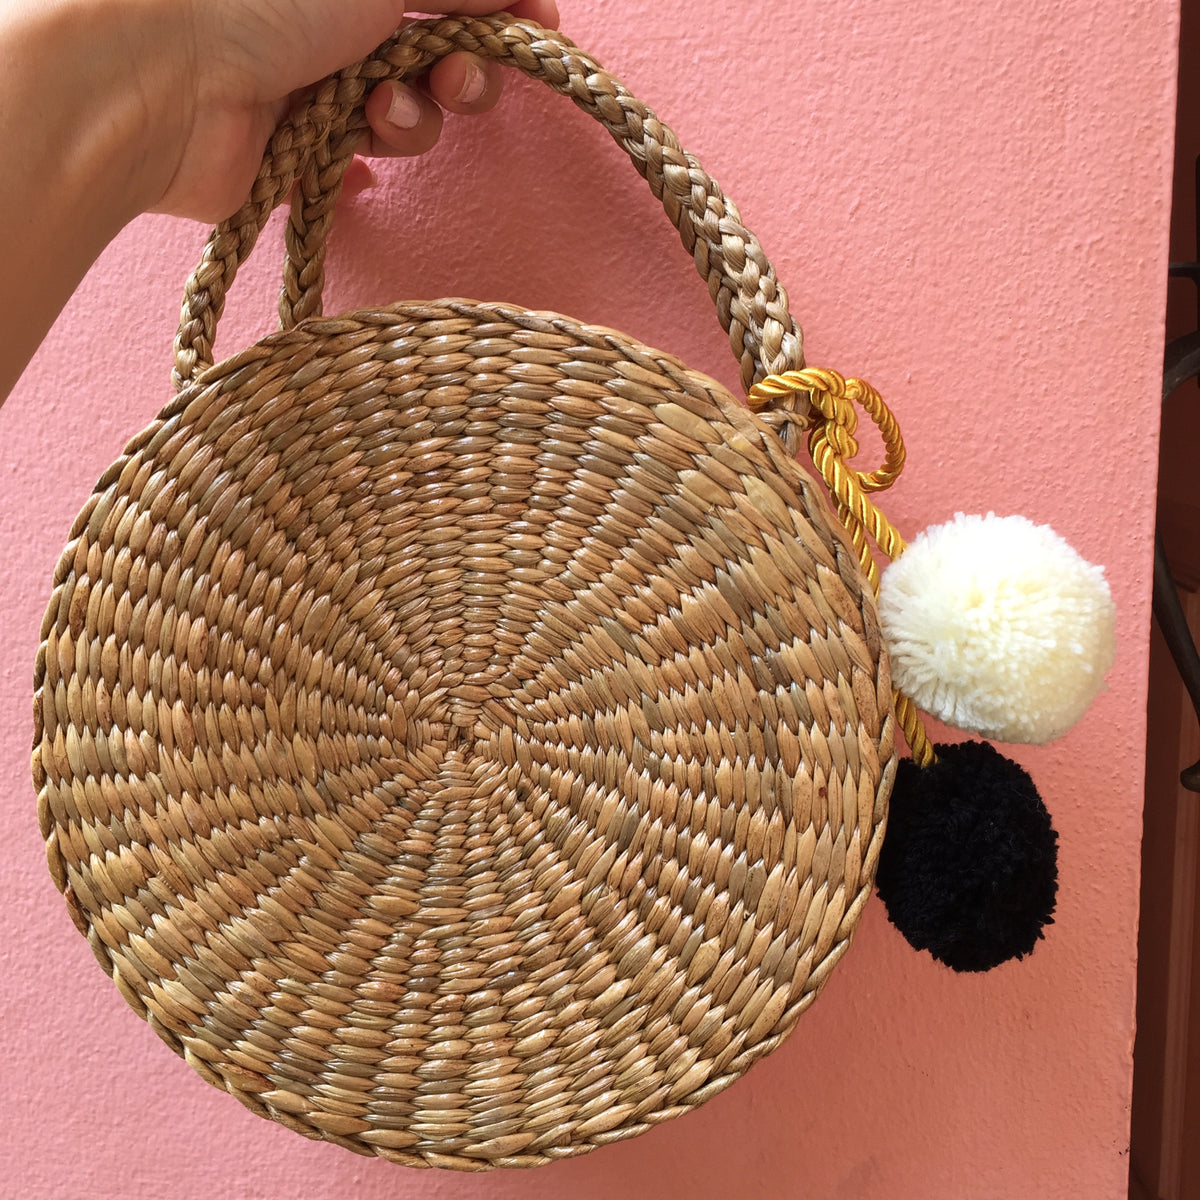 New Saturday Straw Bag (with handles)